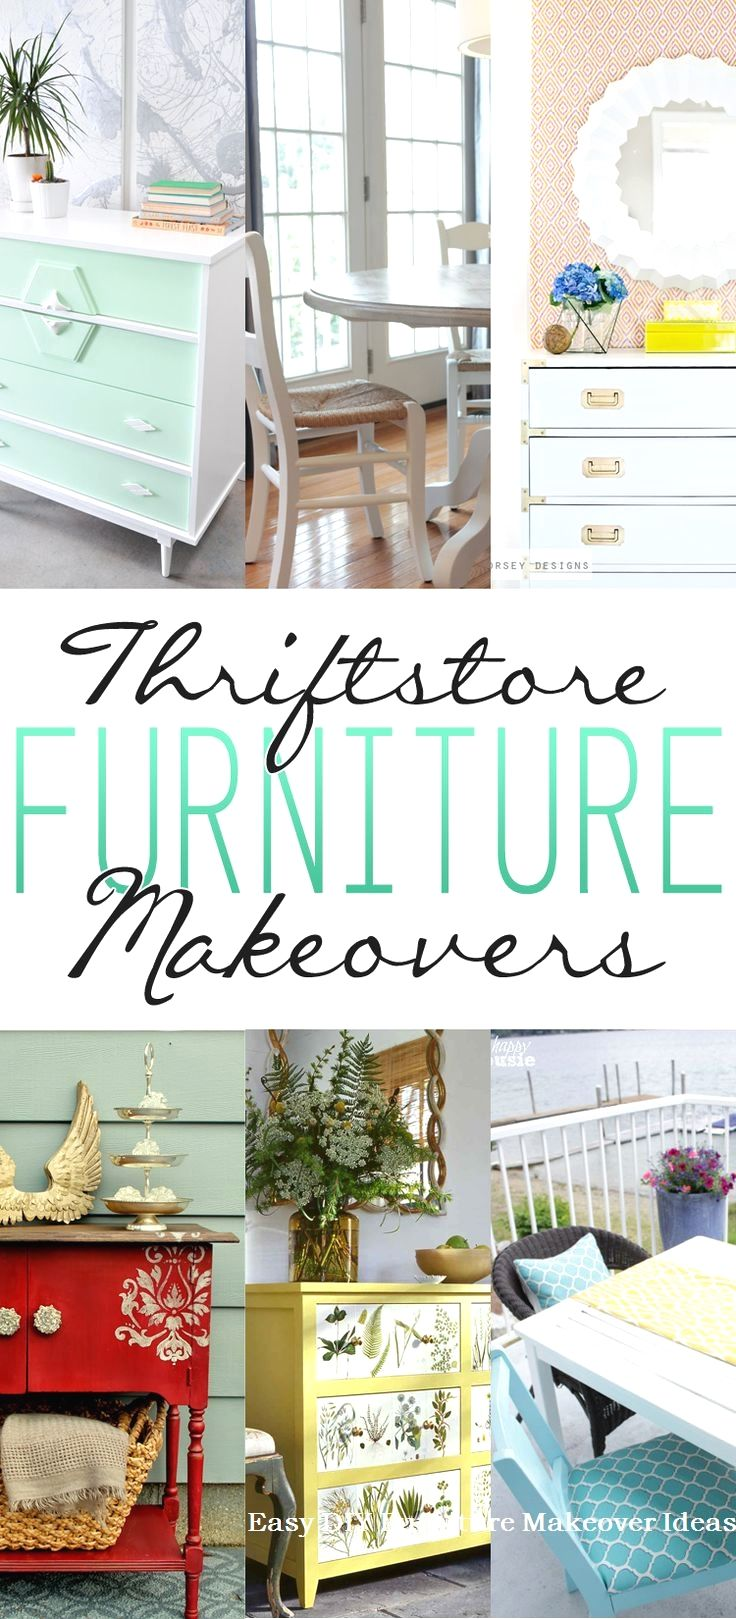 Great Tips And Diy Ideas For Furniture Makeover Furnitureideas Diyfurniture